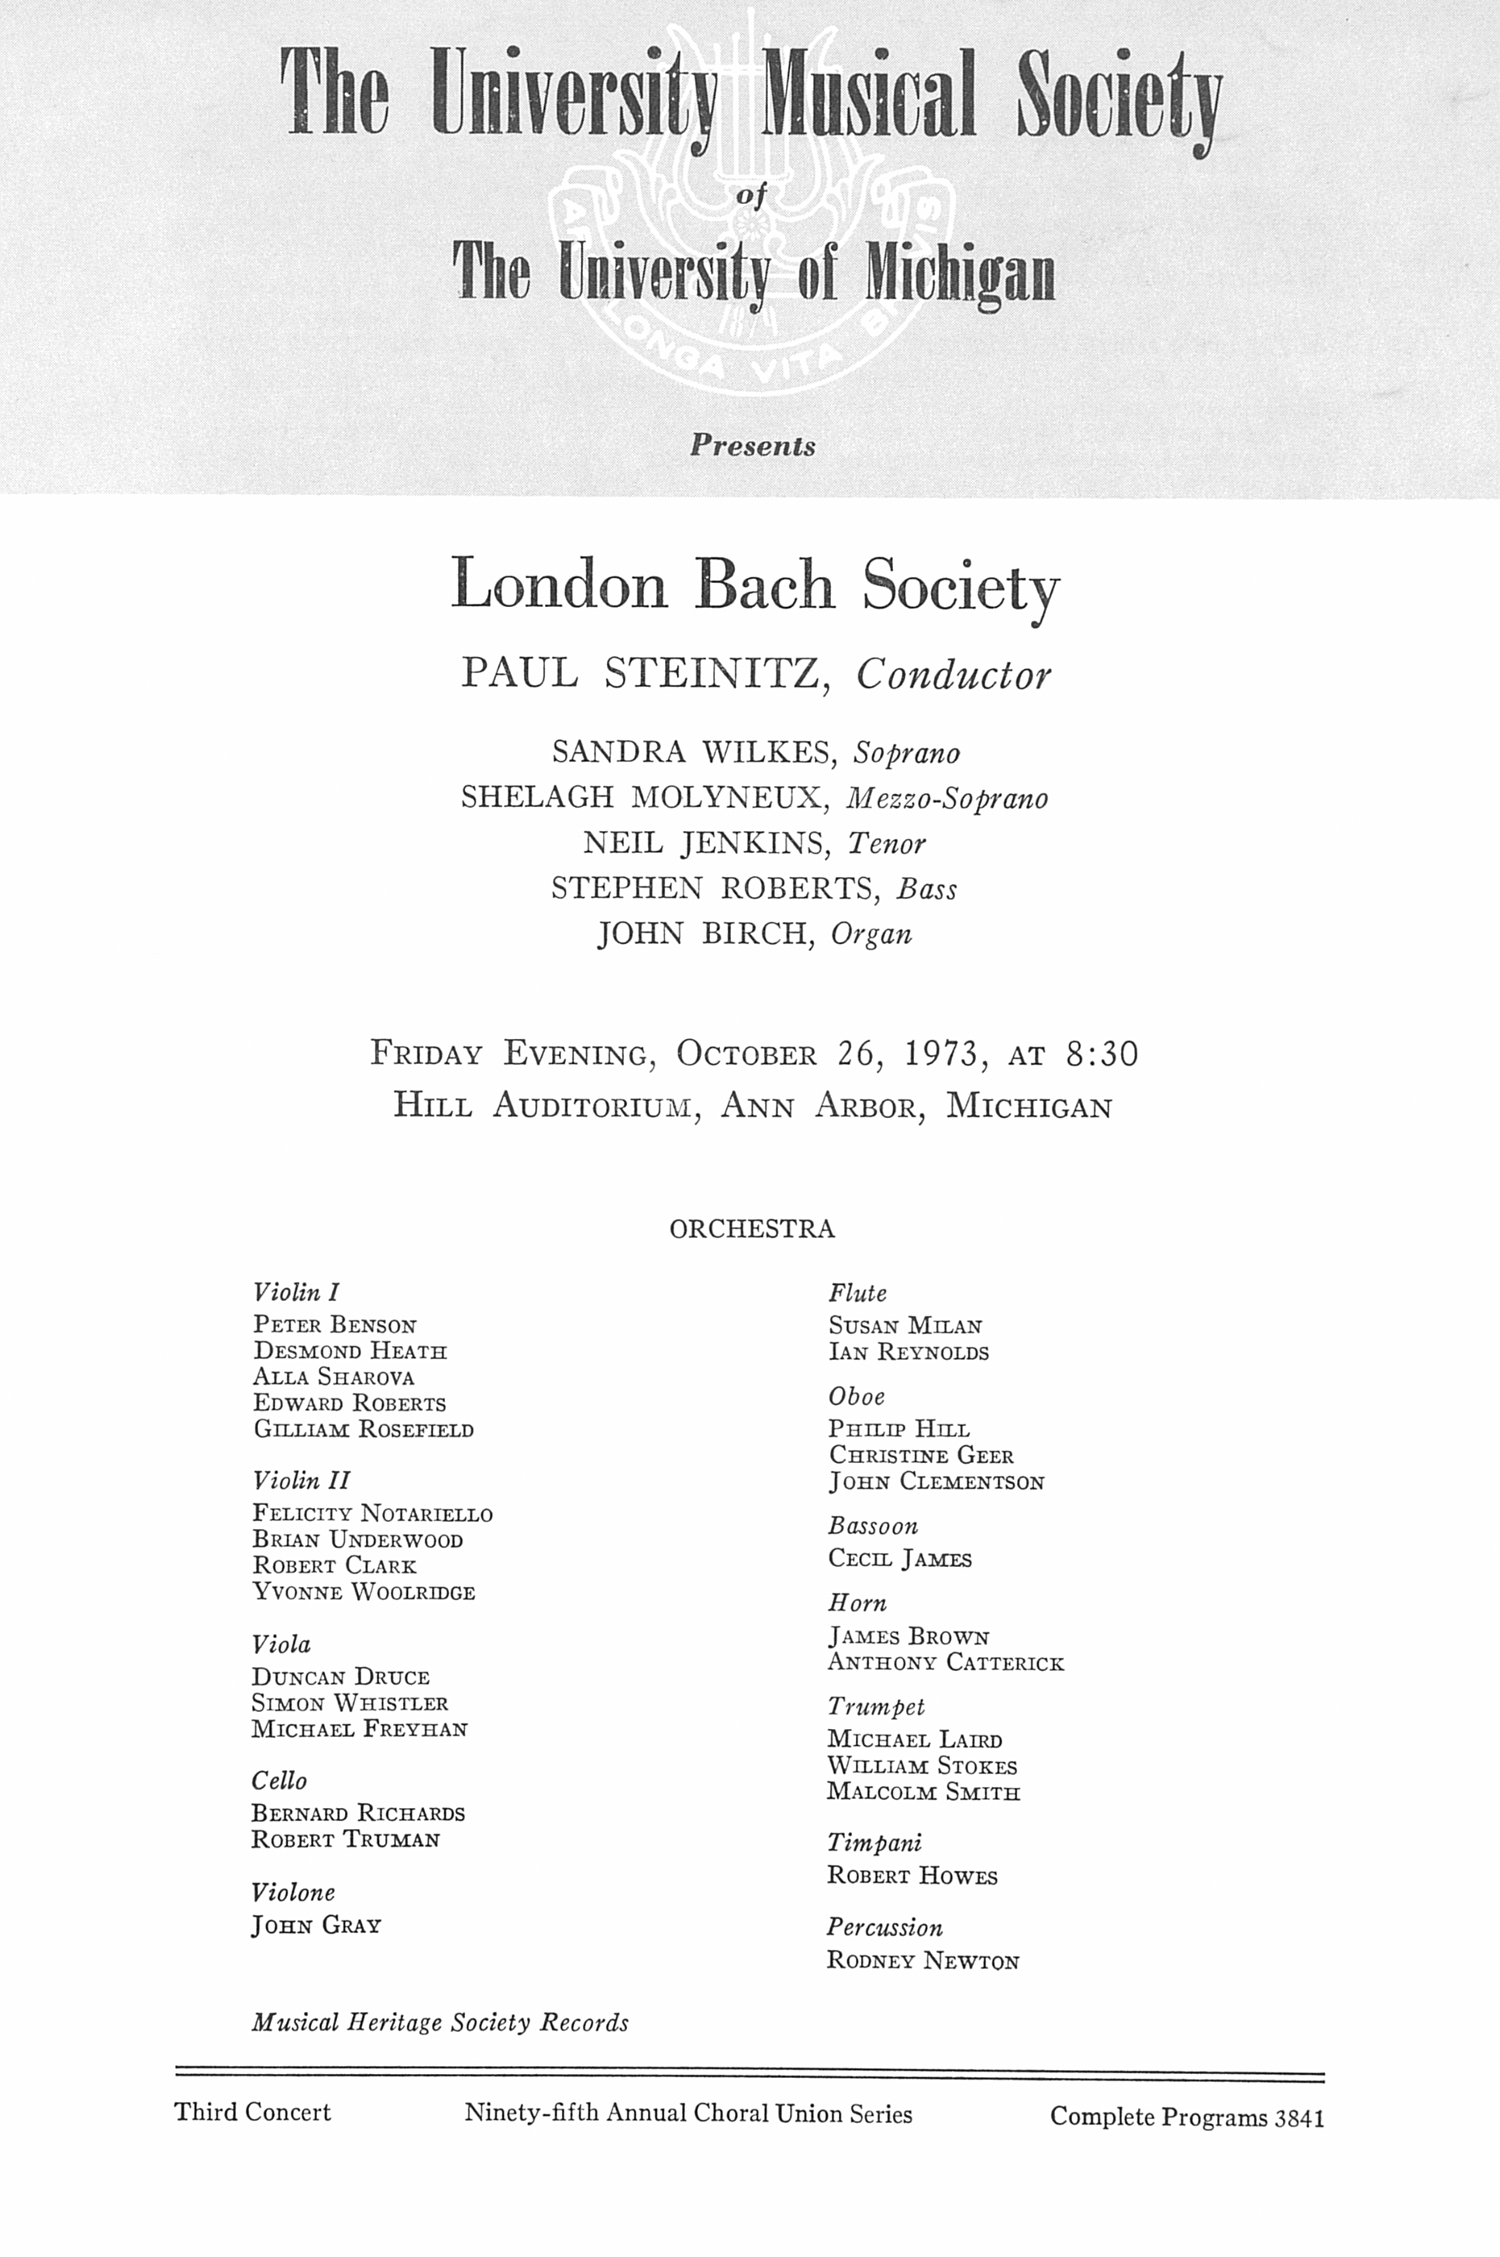 UMS Concert Program, October 26, 1973: London Bach Society -- Paul Steinitz image